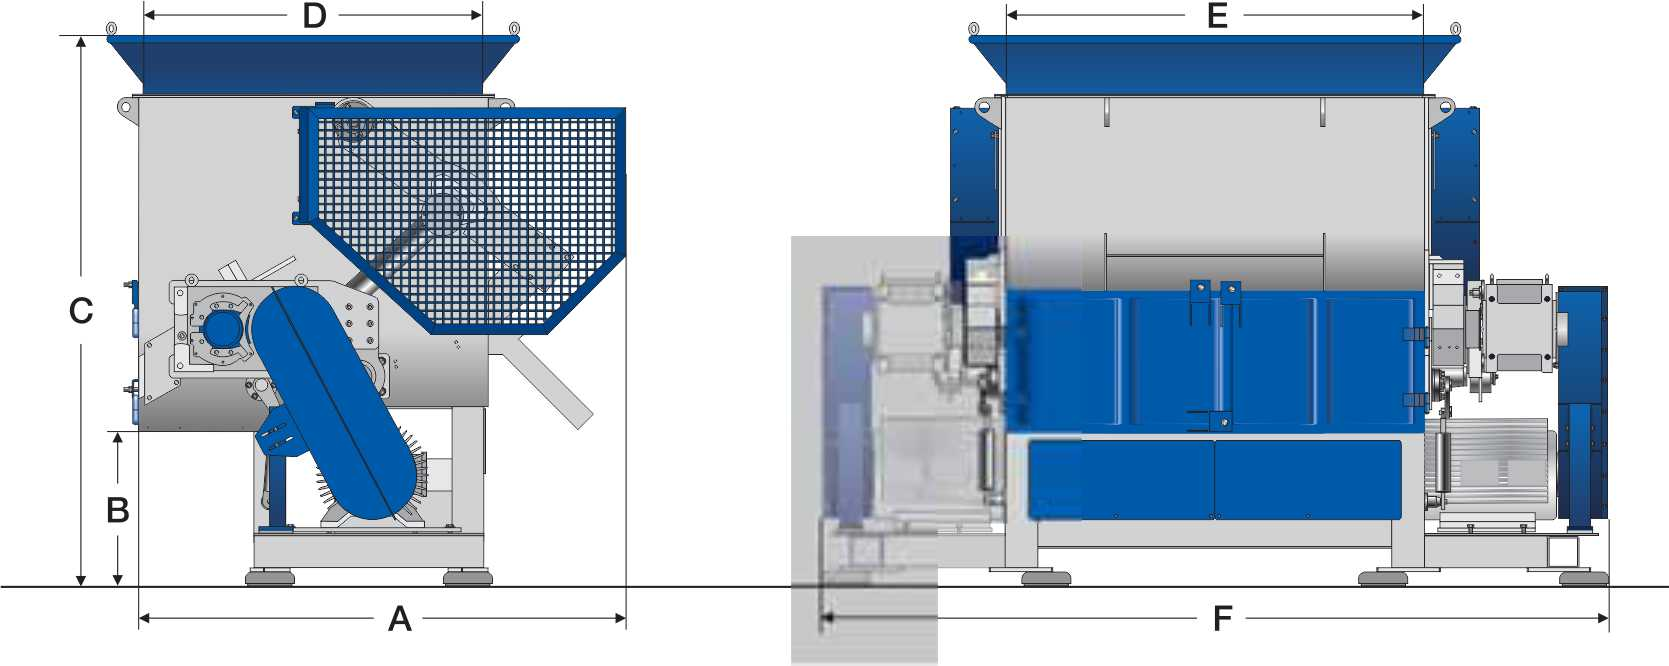 general purpose industrial shredders design